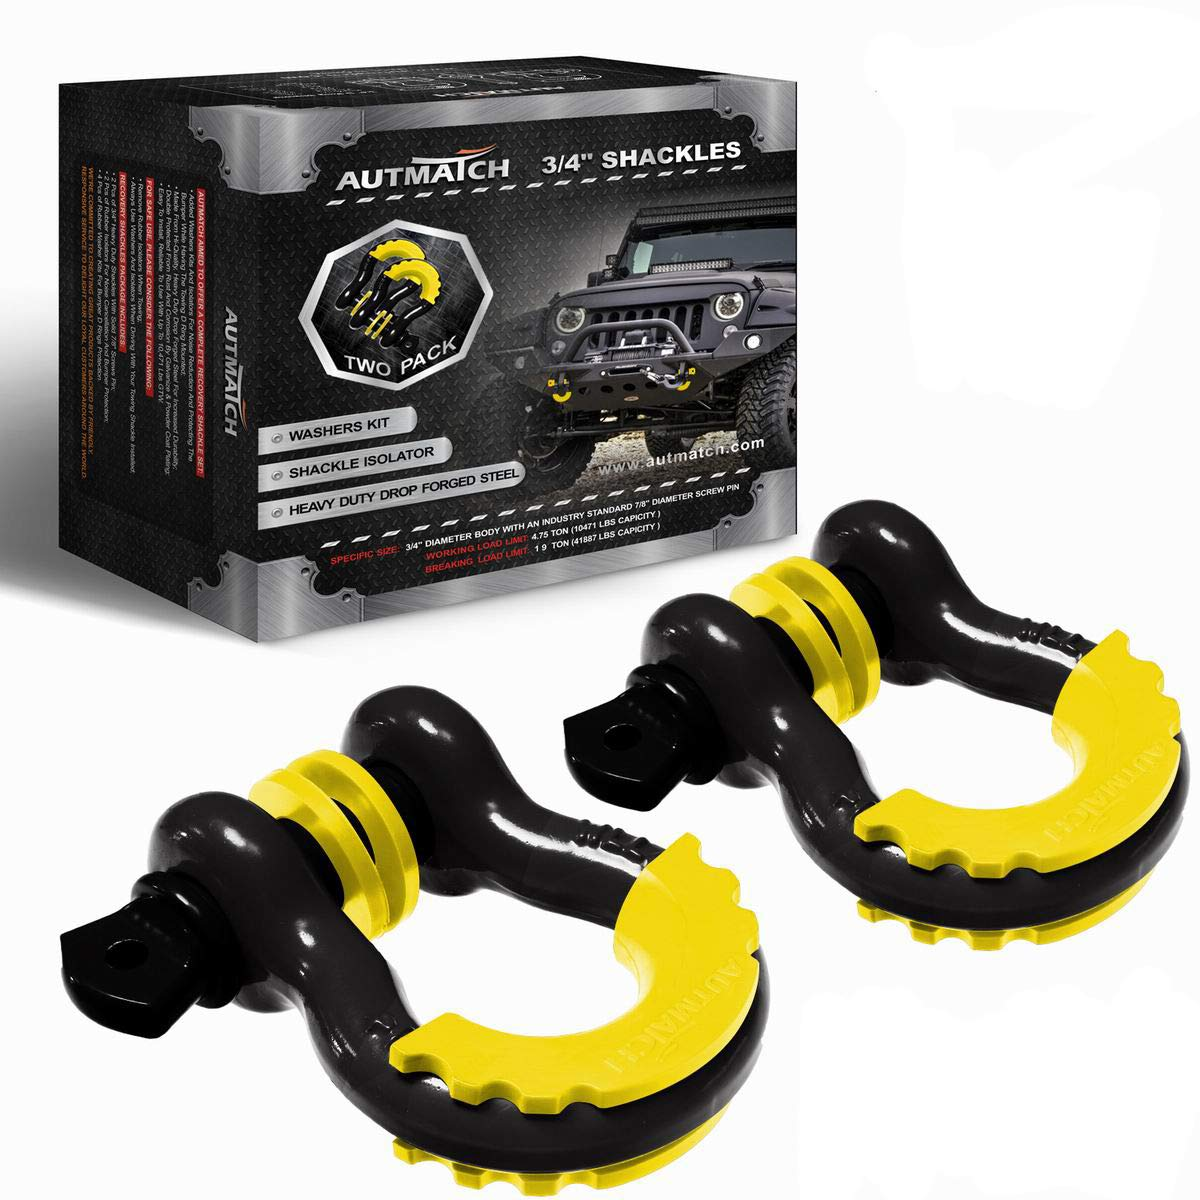 AUTMATCH Shackles 3/4'' D Ring Shackle (2 Pack) 41,887Ib Break Strength with 7/8'' Screw Pin and Shackle Isolator & Washers Kit for Tow Strap Winch Off Road Towing Jeep Vehicle Recovery Black & Yellow